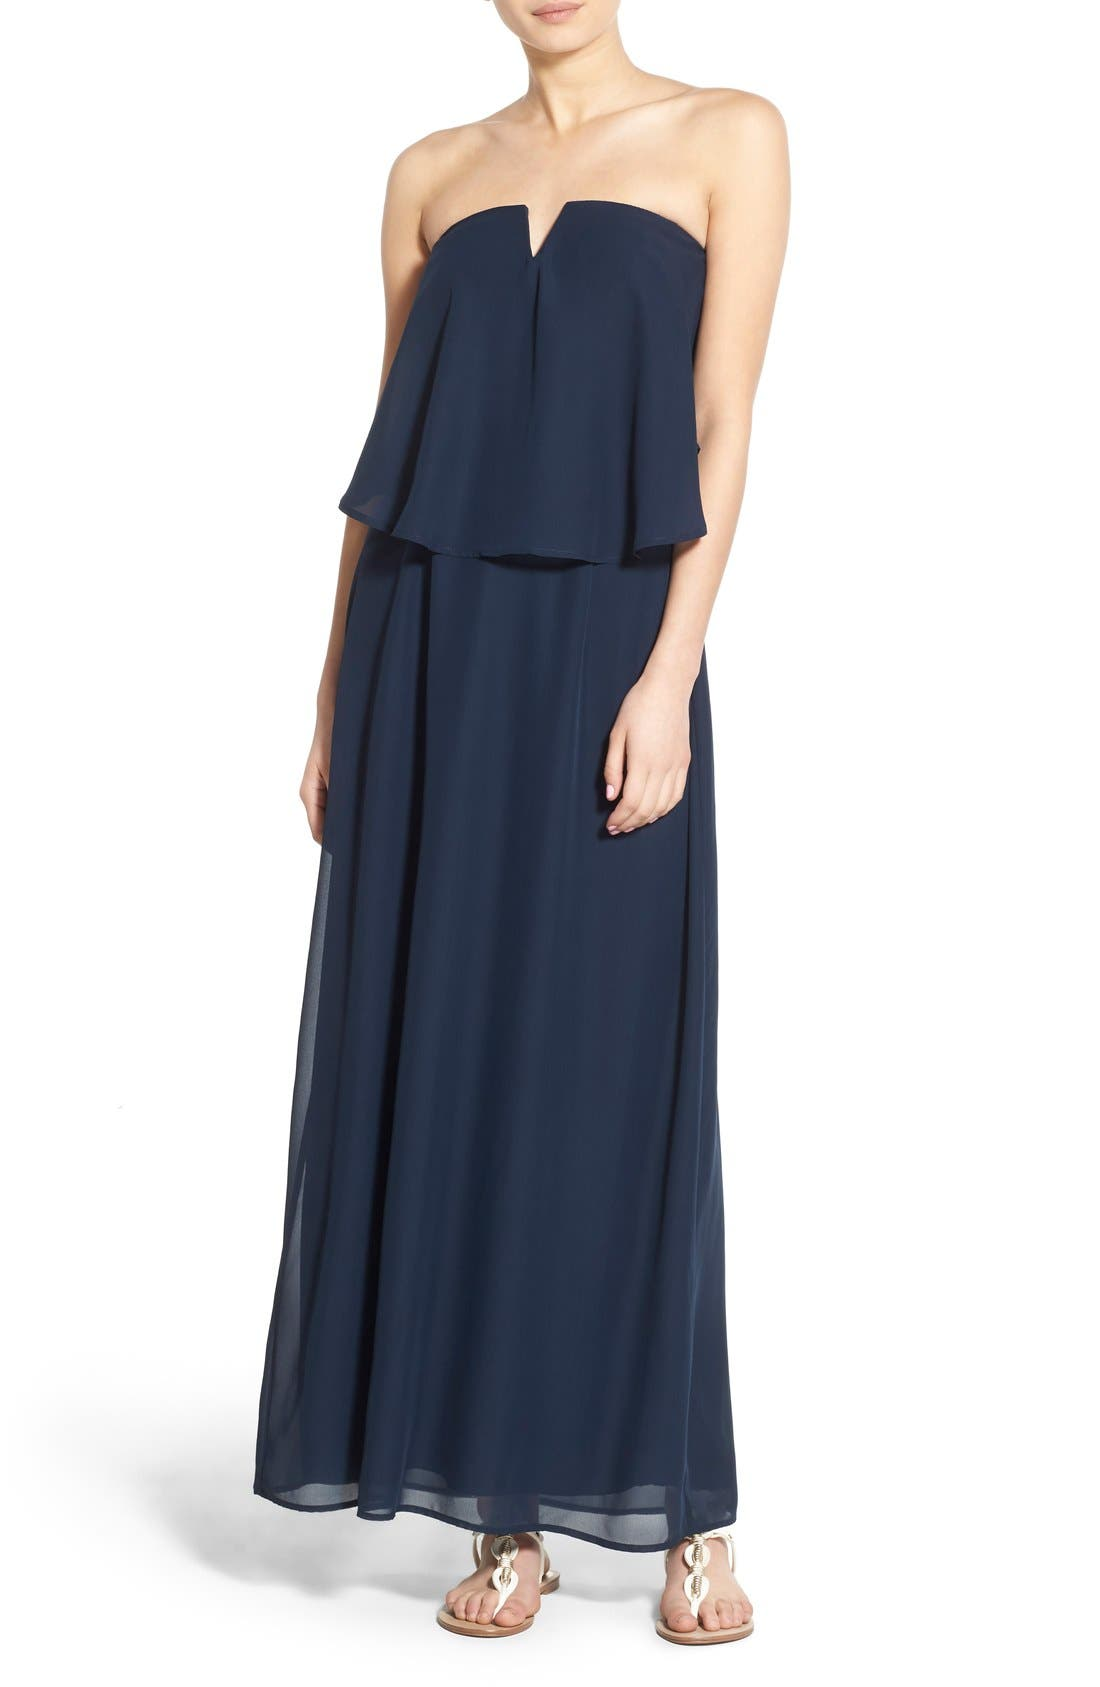 WAY-IN, Strapless Popover Maxi Dress, Main thumbnail 1, color, 411